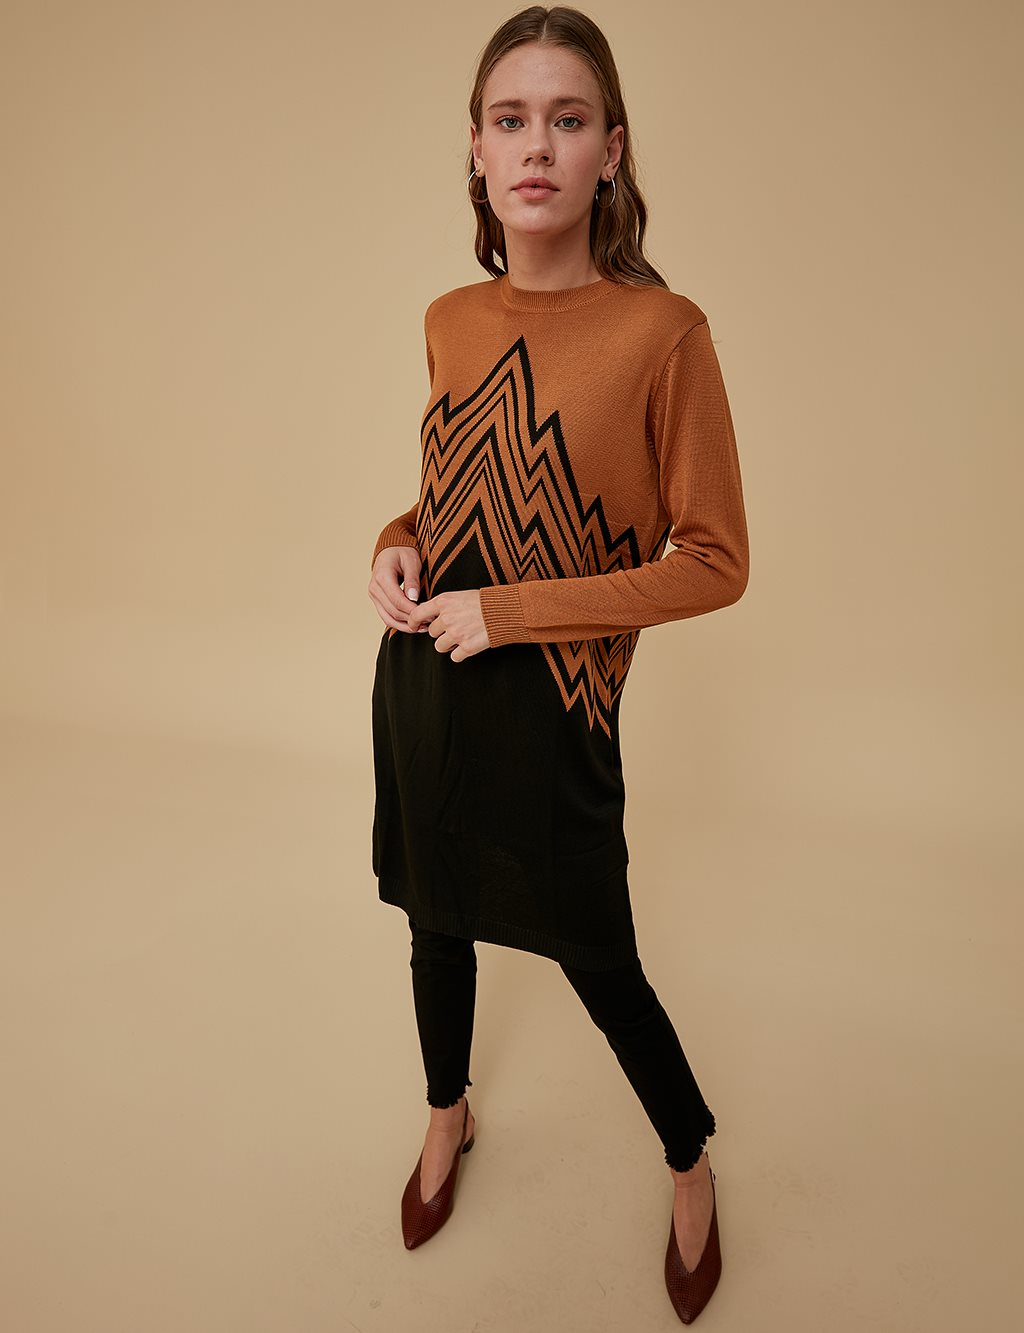 Geometric Patterned Knitwear Tunic A9 TRK44